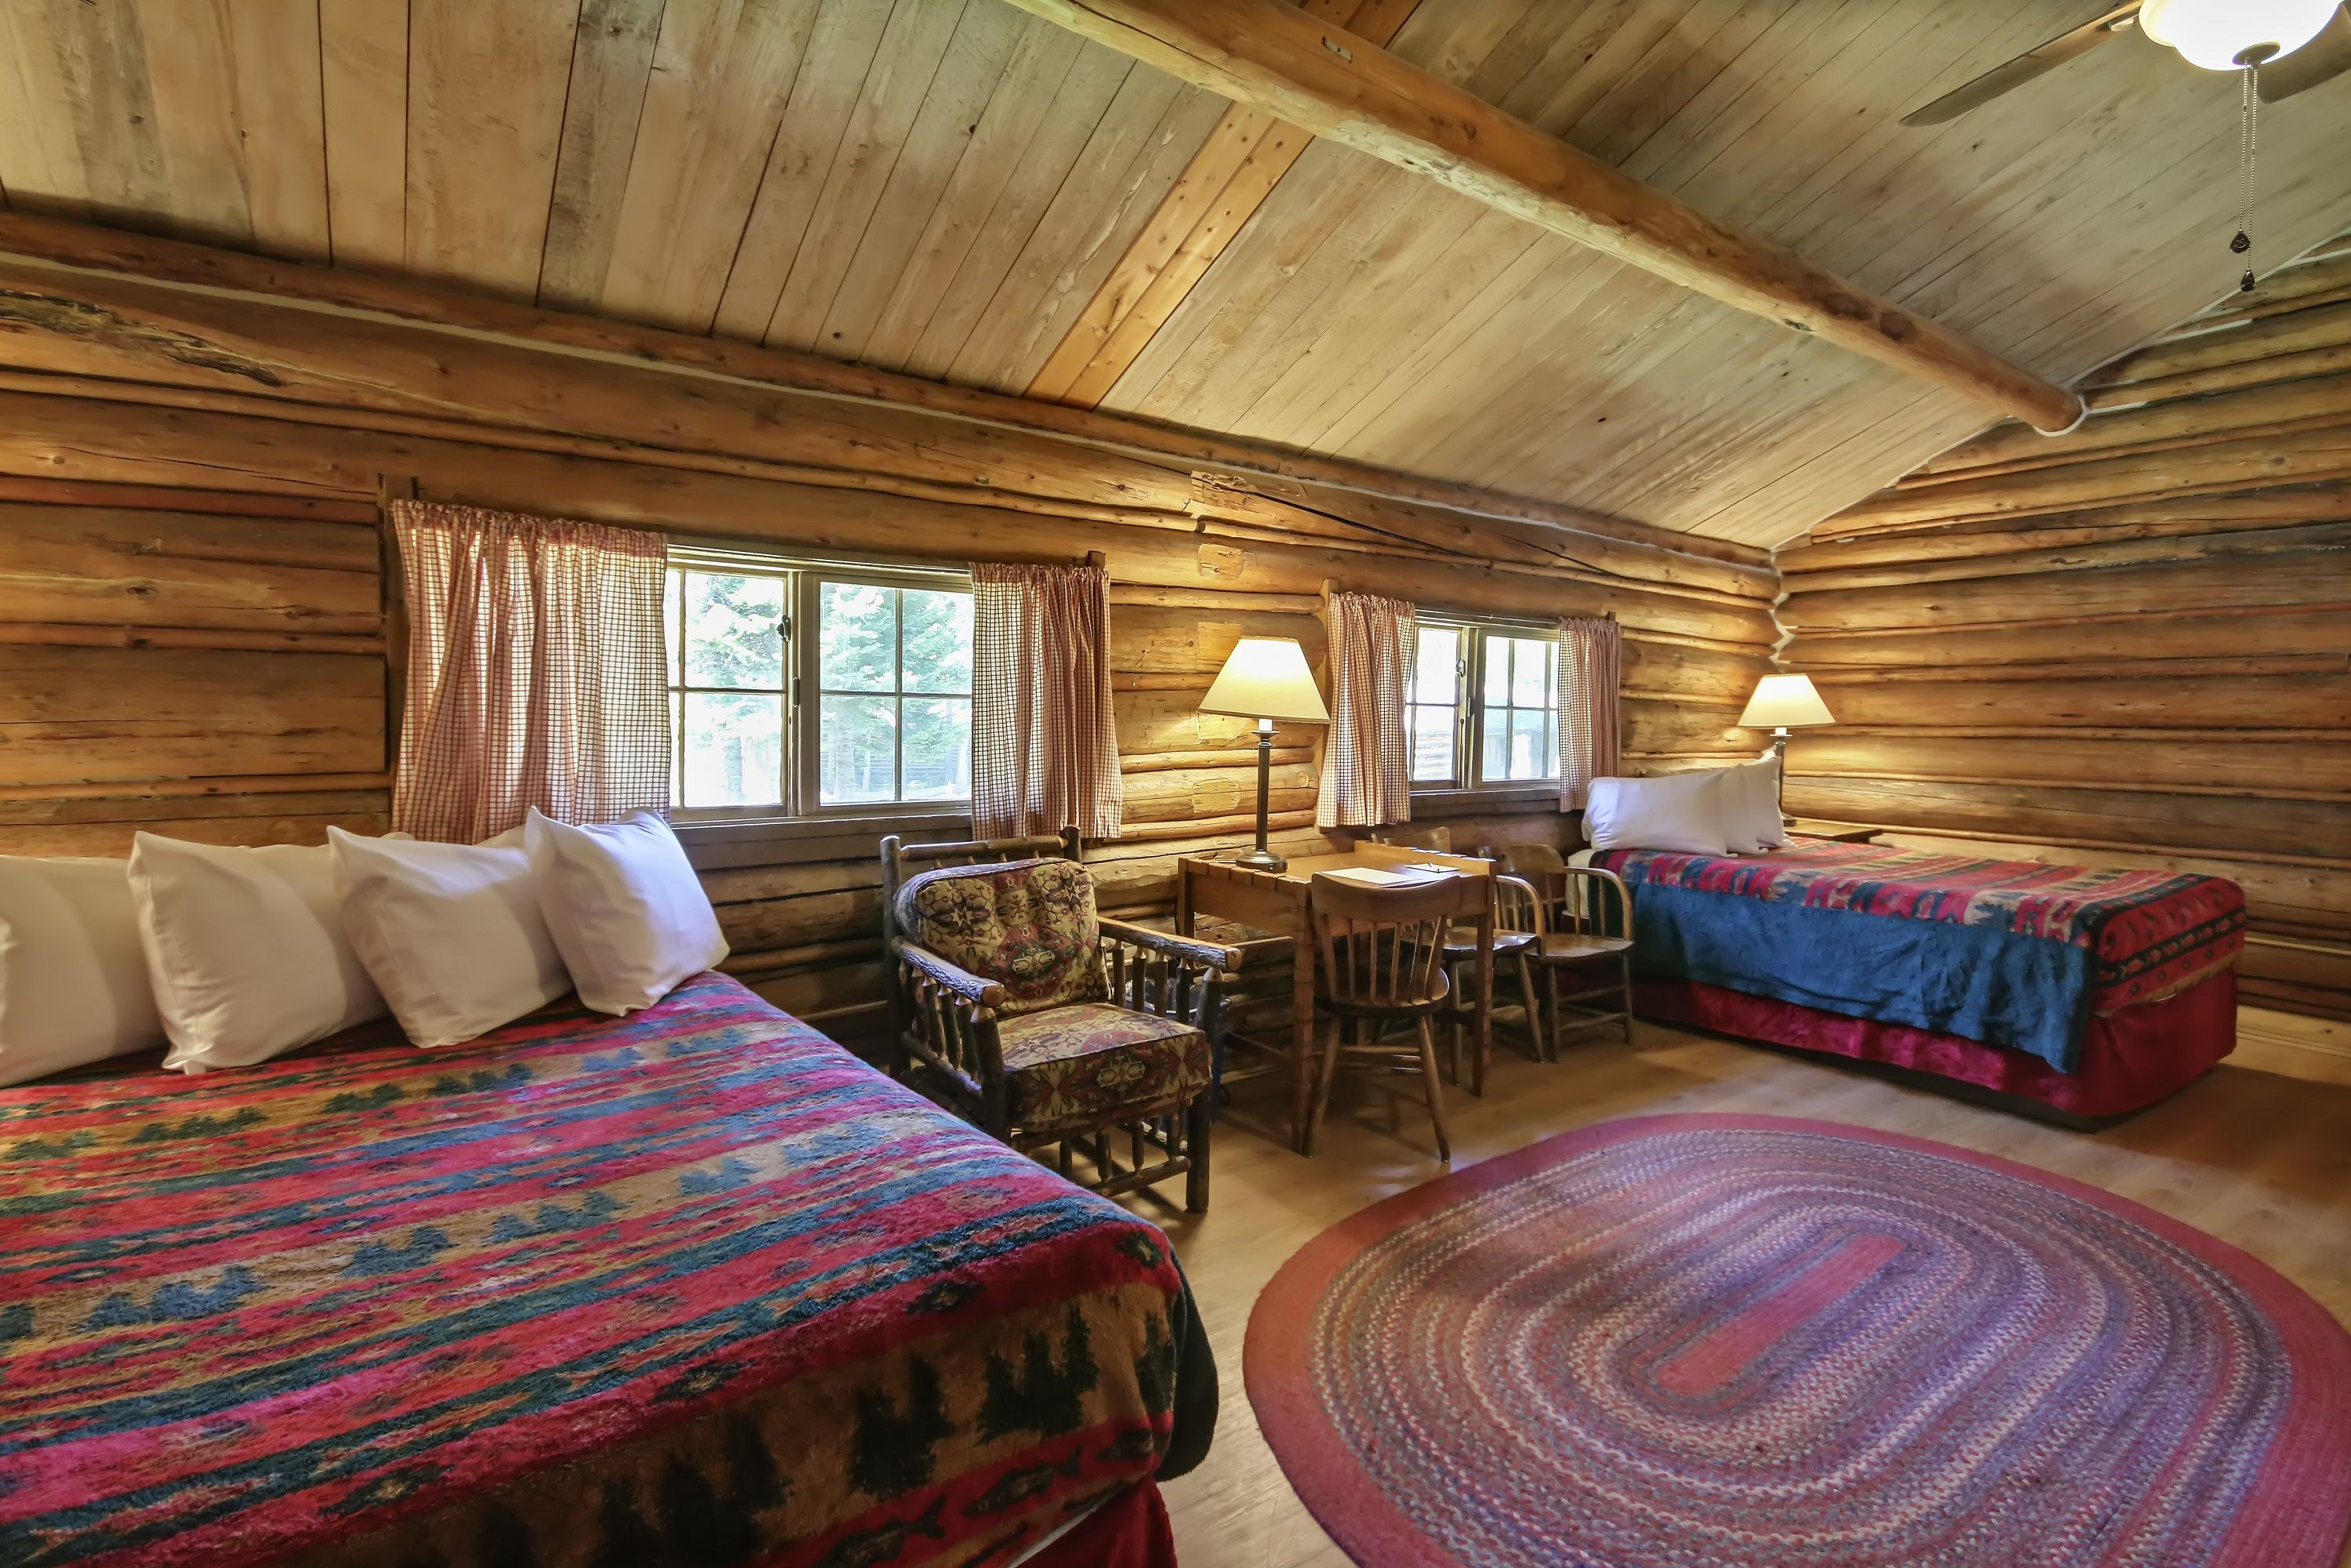 we teton experienced and hole rentals pleasure to yellowstone s always at staff the of members jackson being luton lodging so make true again willing are cabins once friendly guests cabin